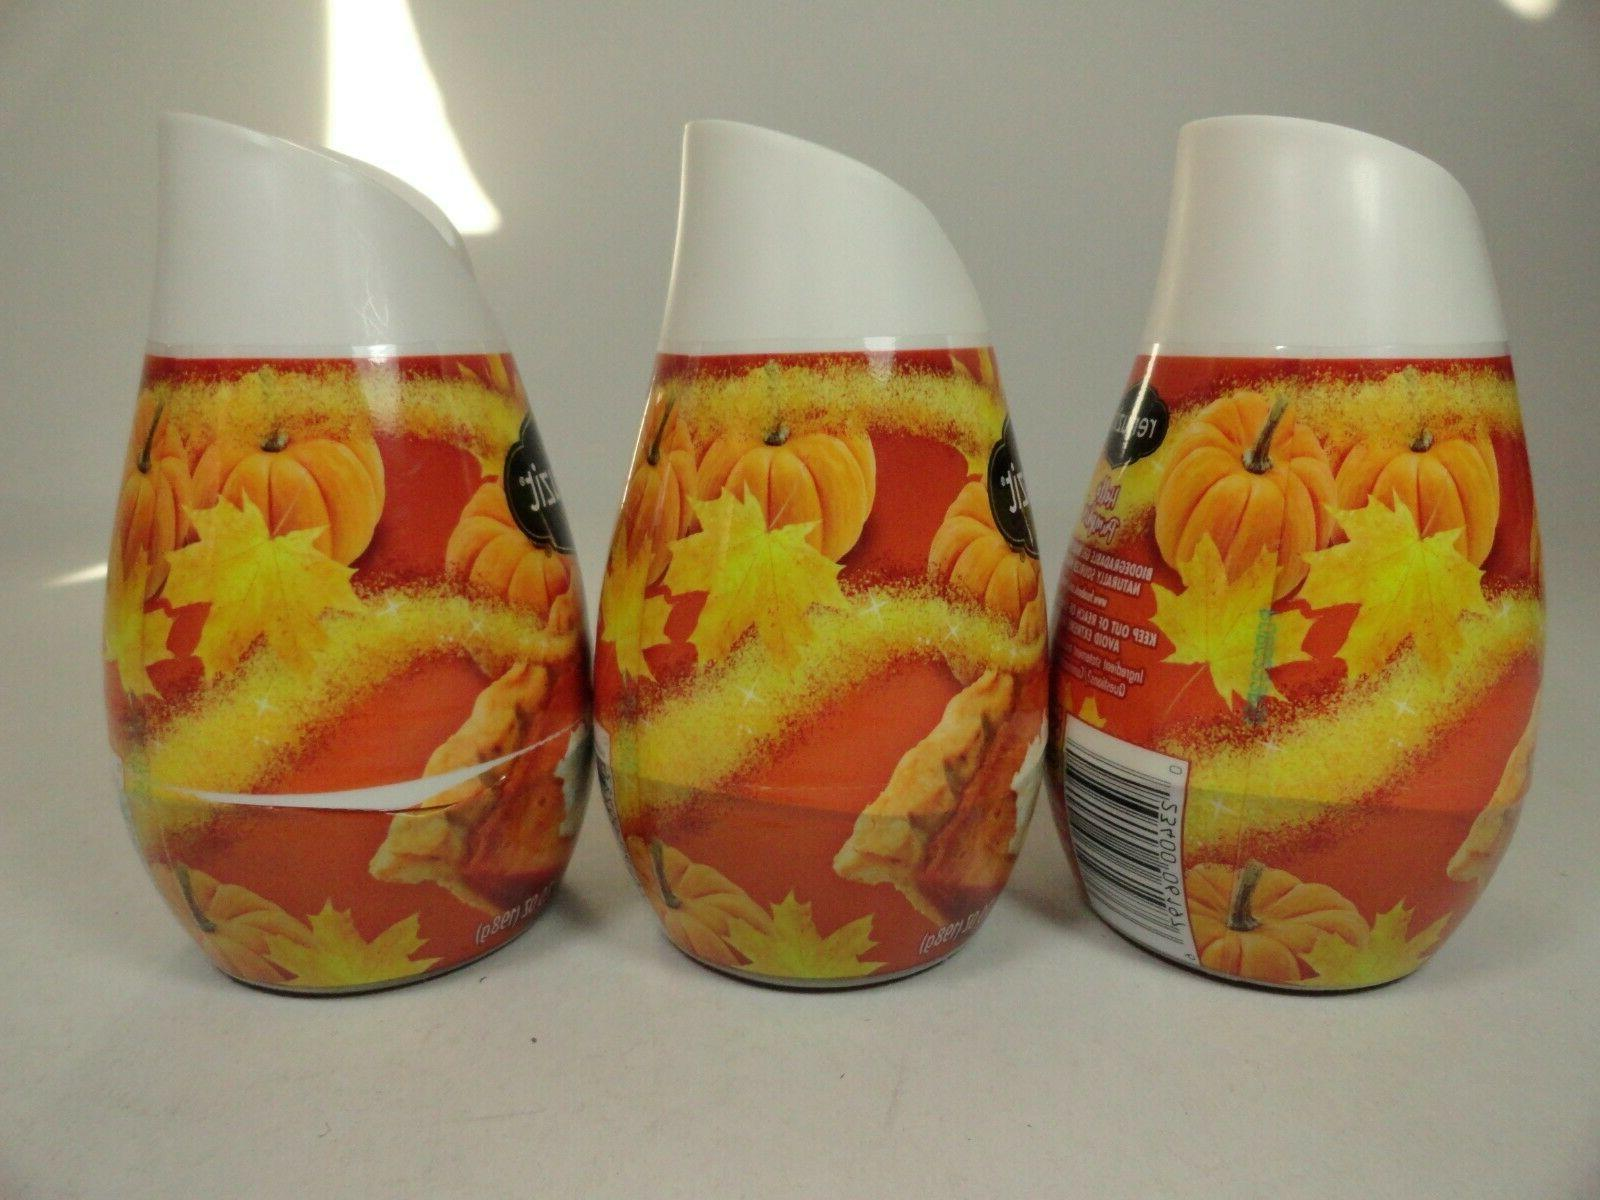 3 Renuzit Air Freshener Gel Hello Pumpkin 7oz